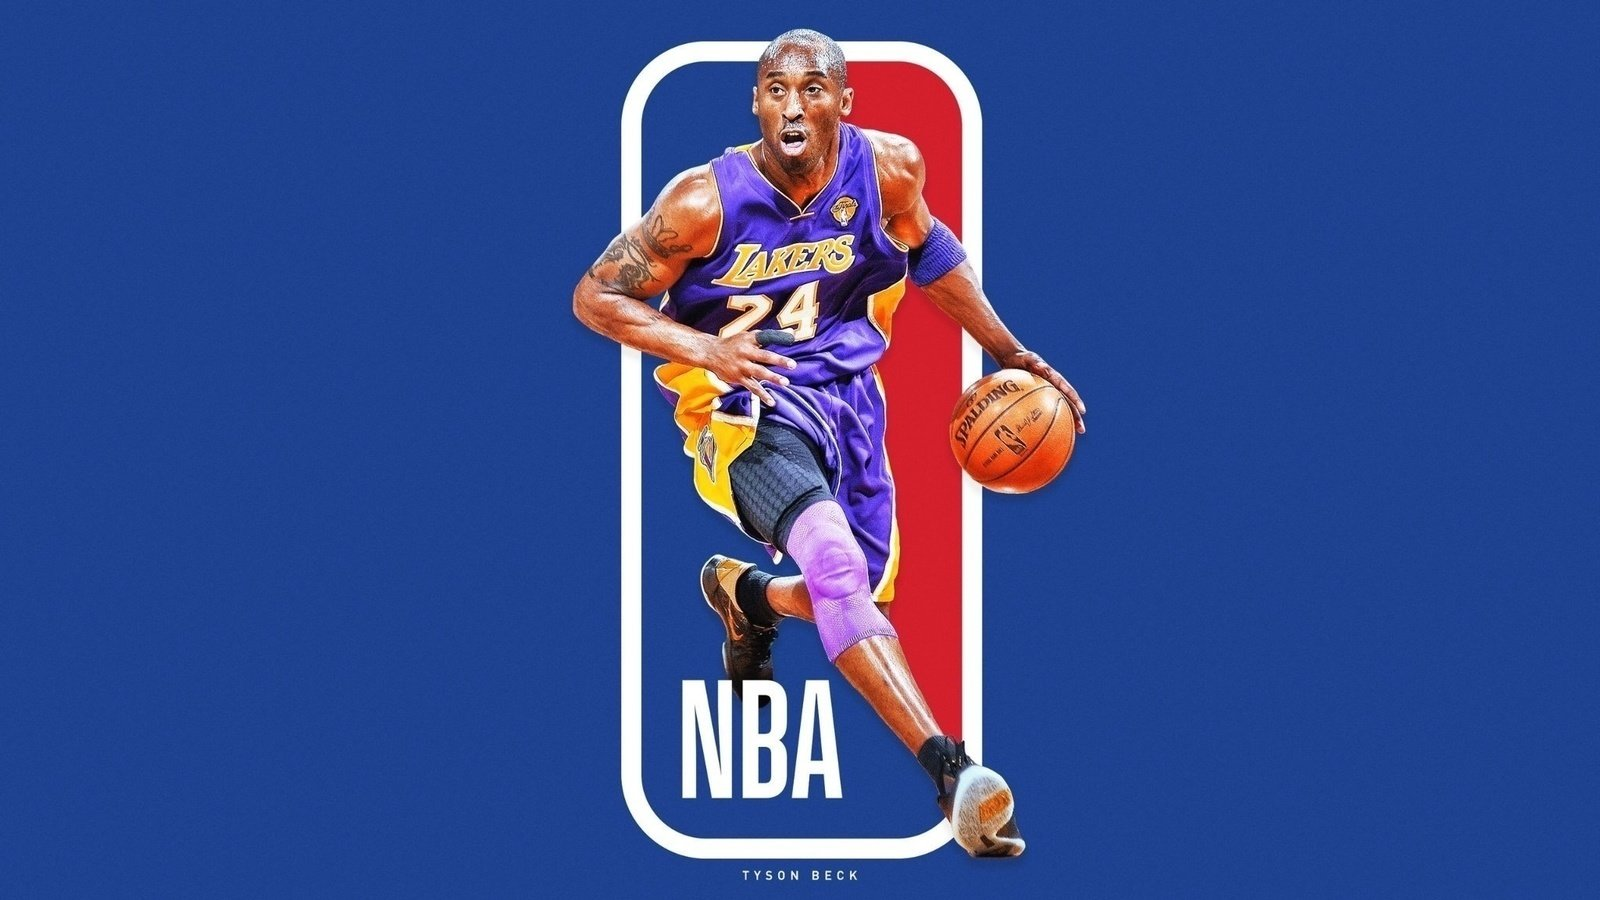 Petition Petition To Make Kobe Bryant The New Nba Logo Change Org